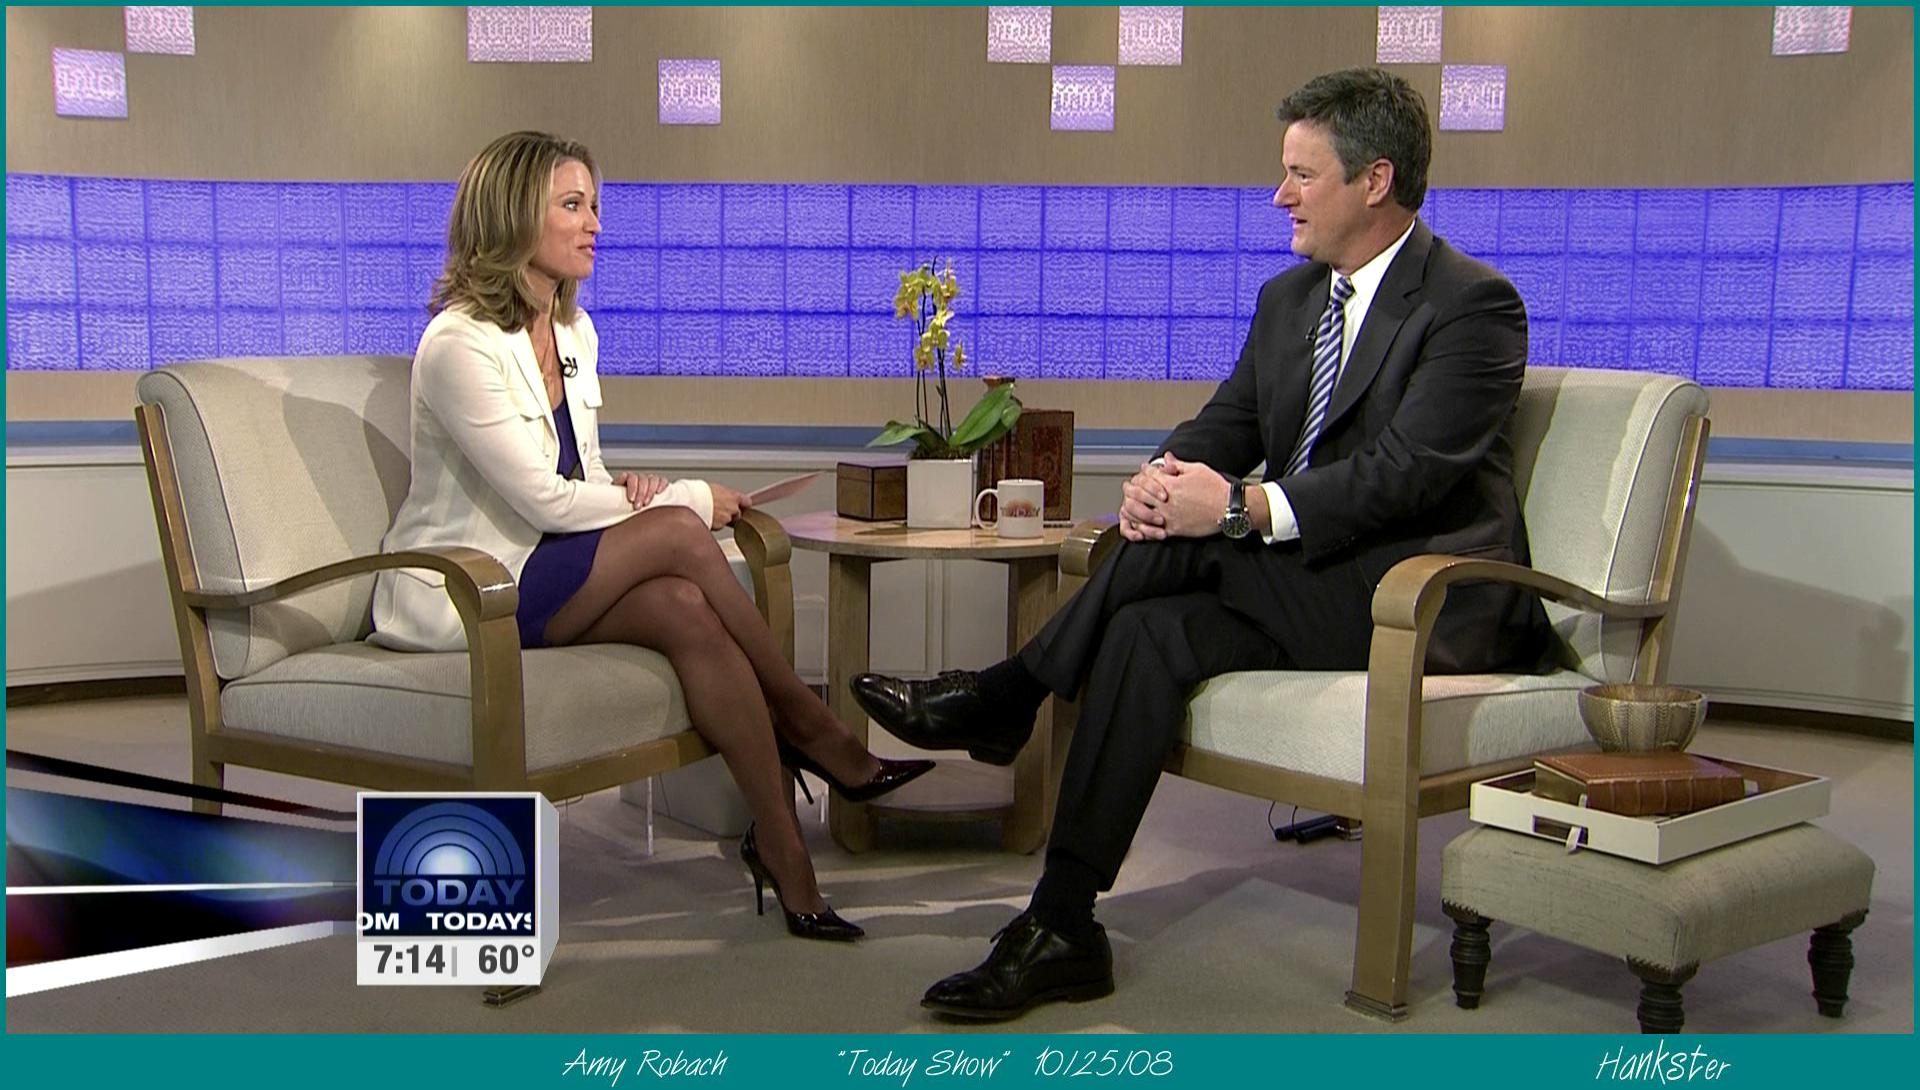 Amy robach images amp pictures findpik